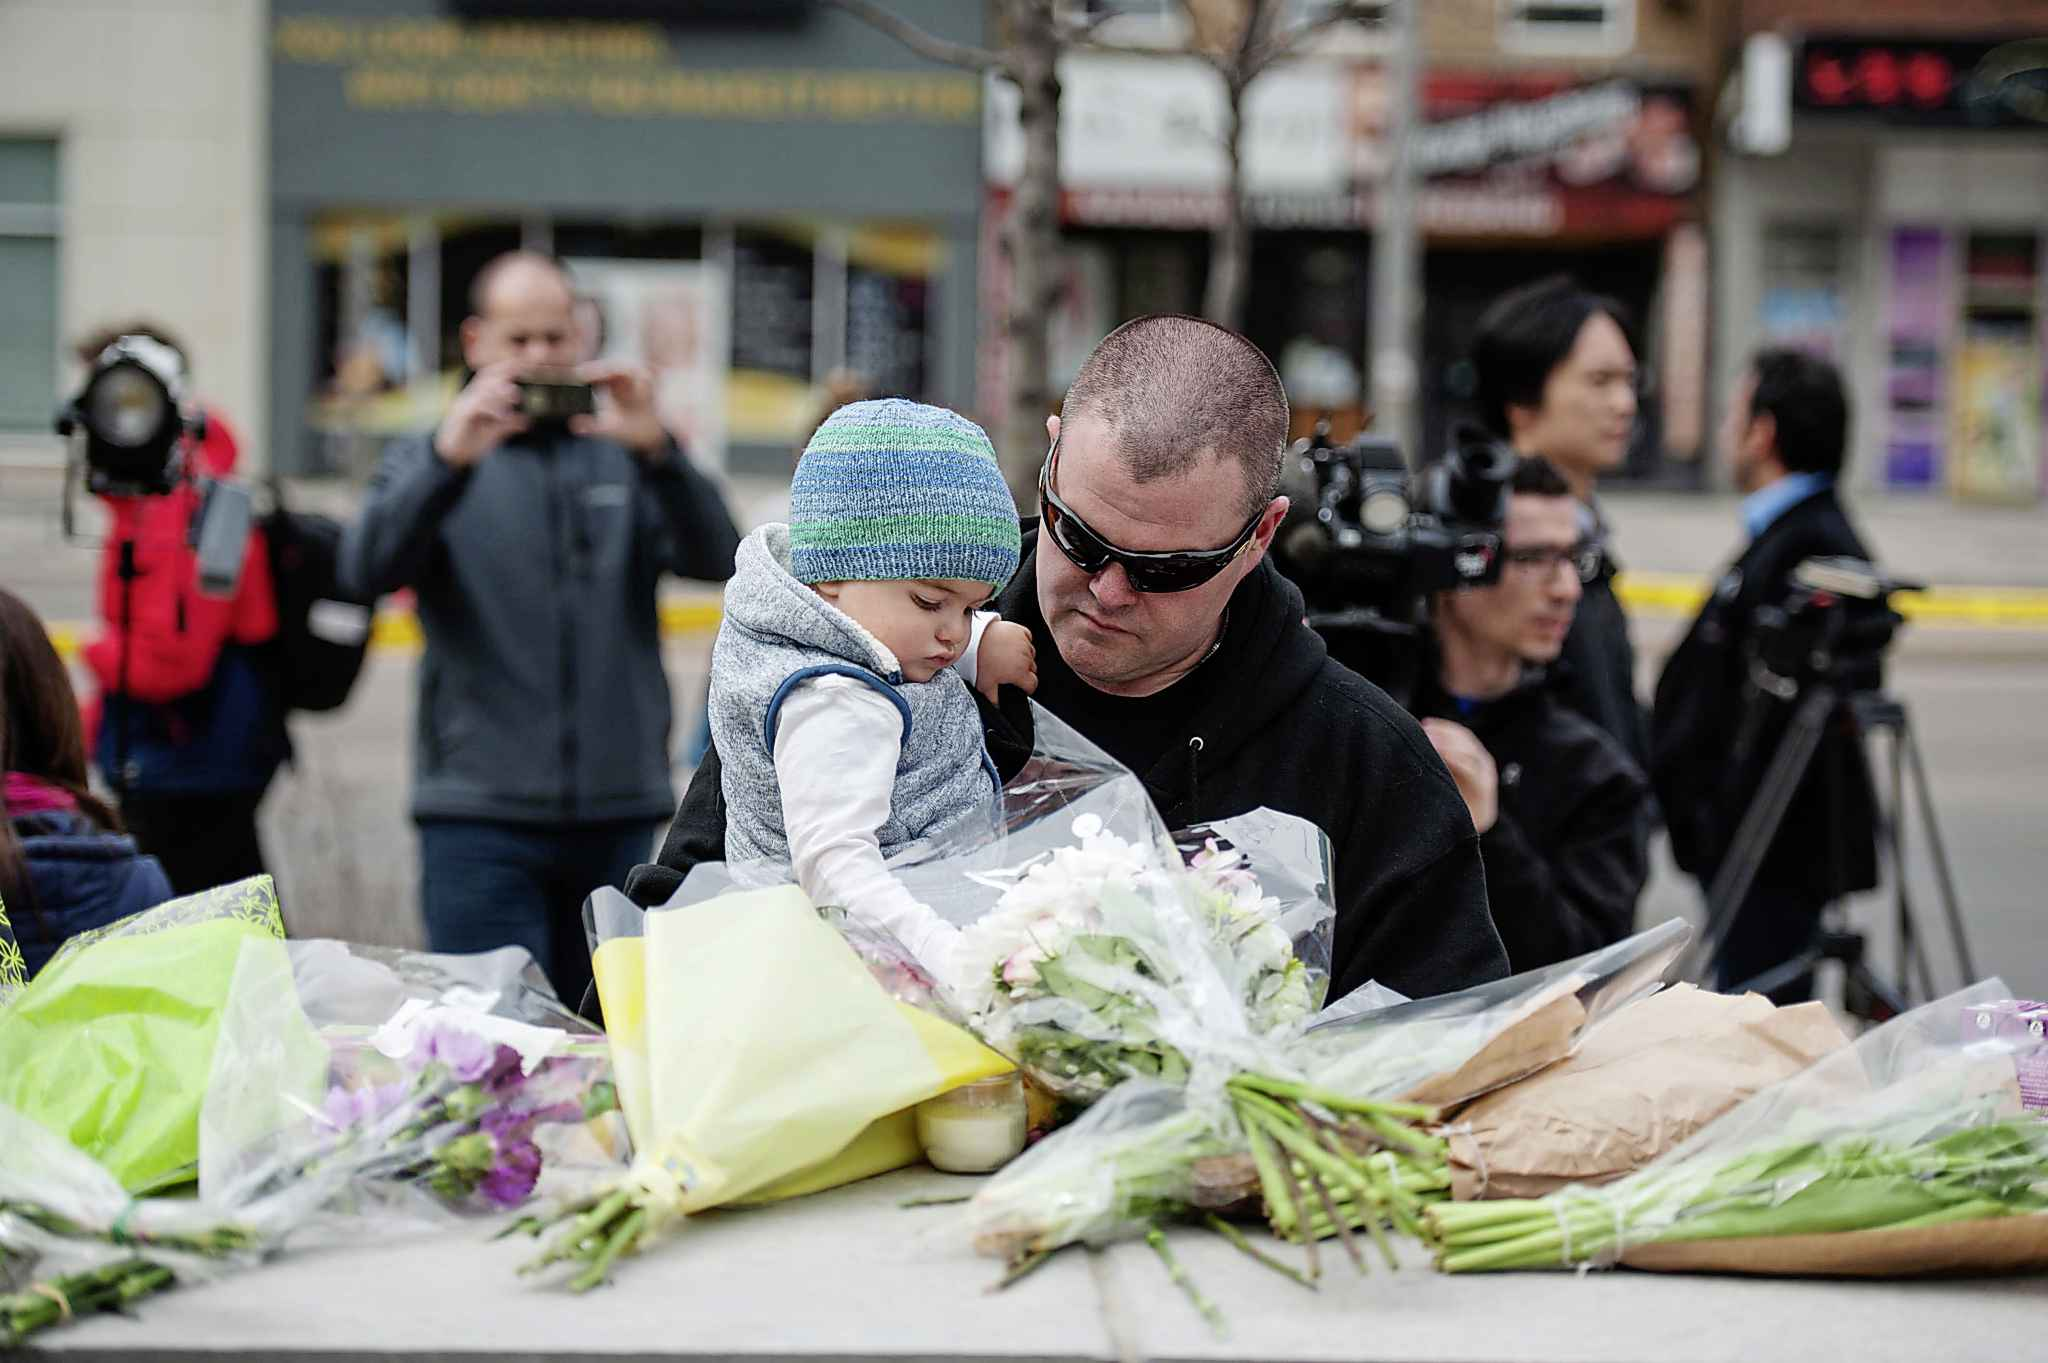 Sean O'Keefe and his son Fionn, 16 months, bring flowers to a memorial on Yonge Street the day after a driver drove a rented van down sidewalks Monday afternoon, striking pedestrians in his path in Toronto, Tuesday, April 24, 2018. THE CANADIAN PRESS/Galit Rodan